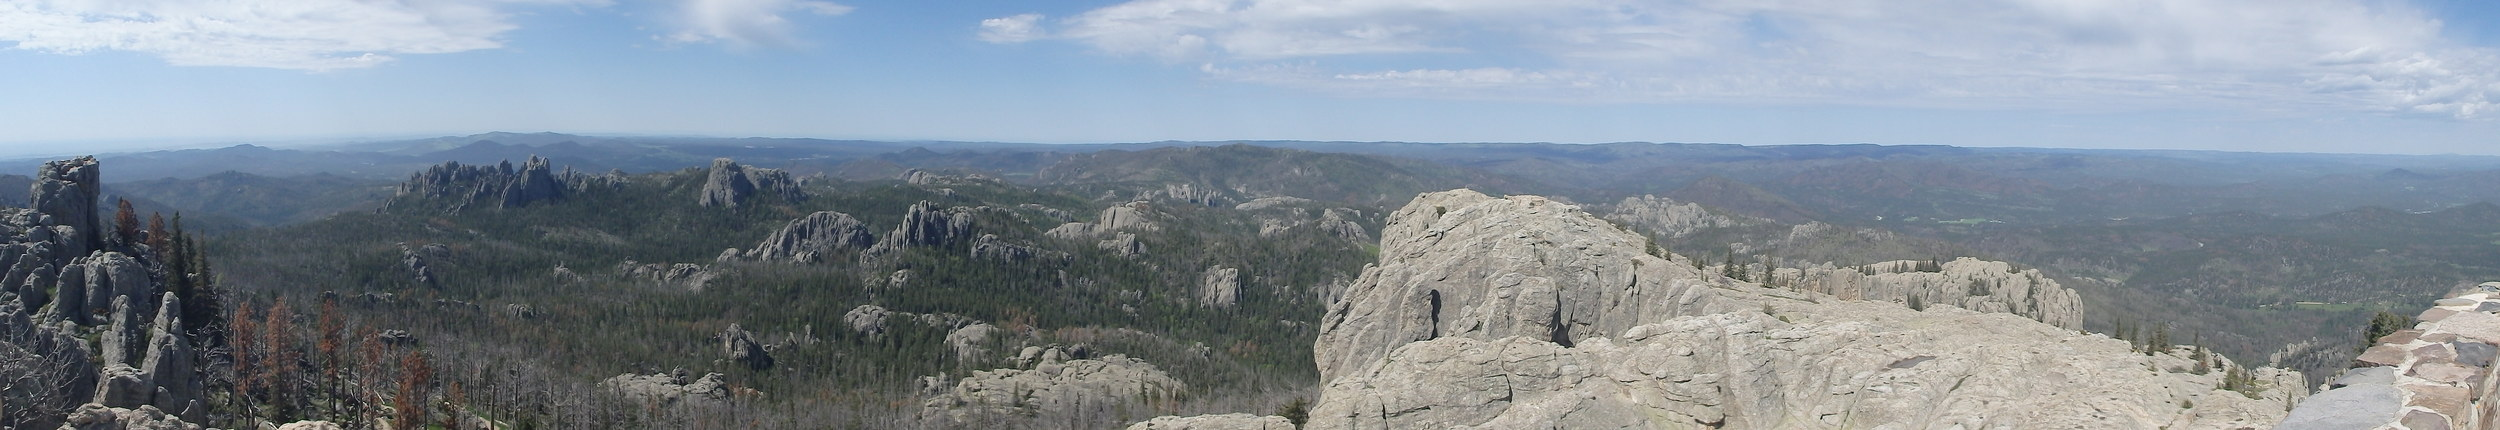 The panoramic shot from Harney Peak